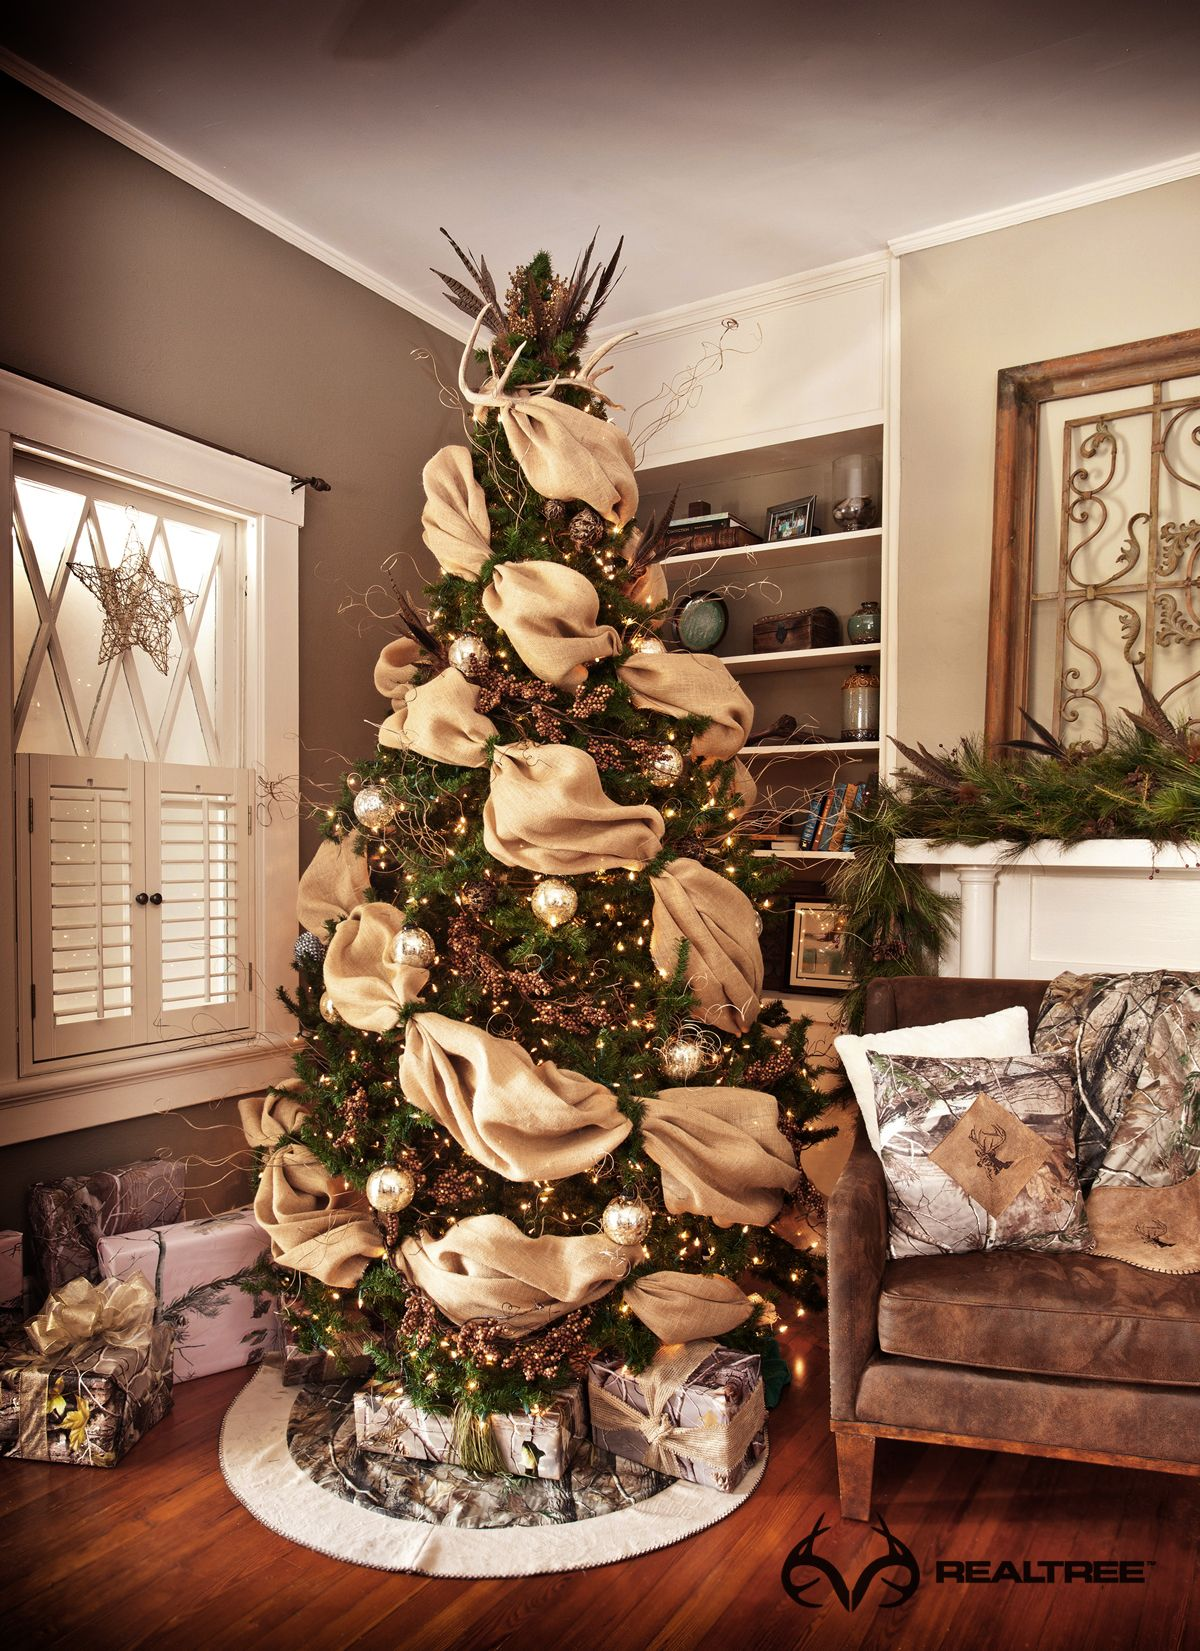 Realtree Camo Holiday Decorating Ideas #Realtreecamo | Camo Holiday ...